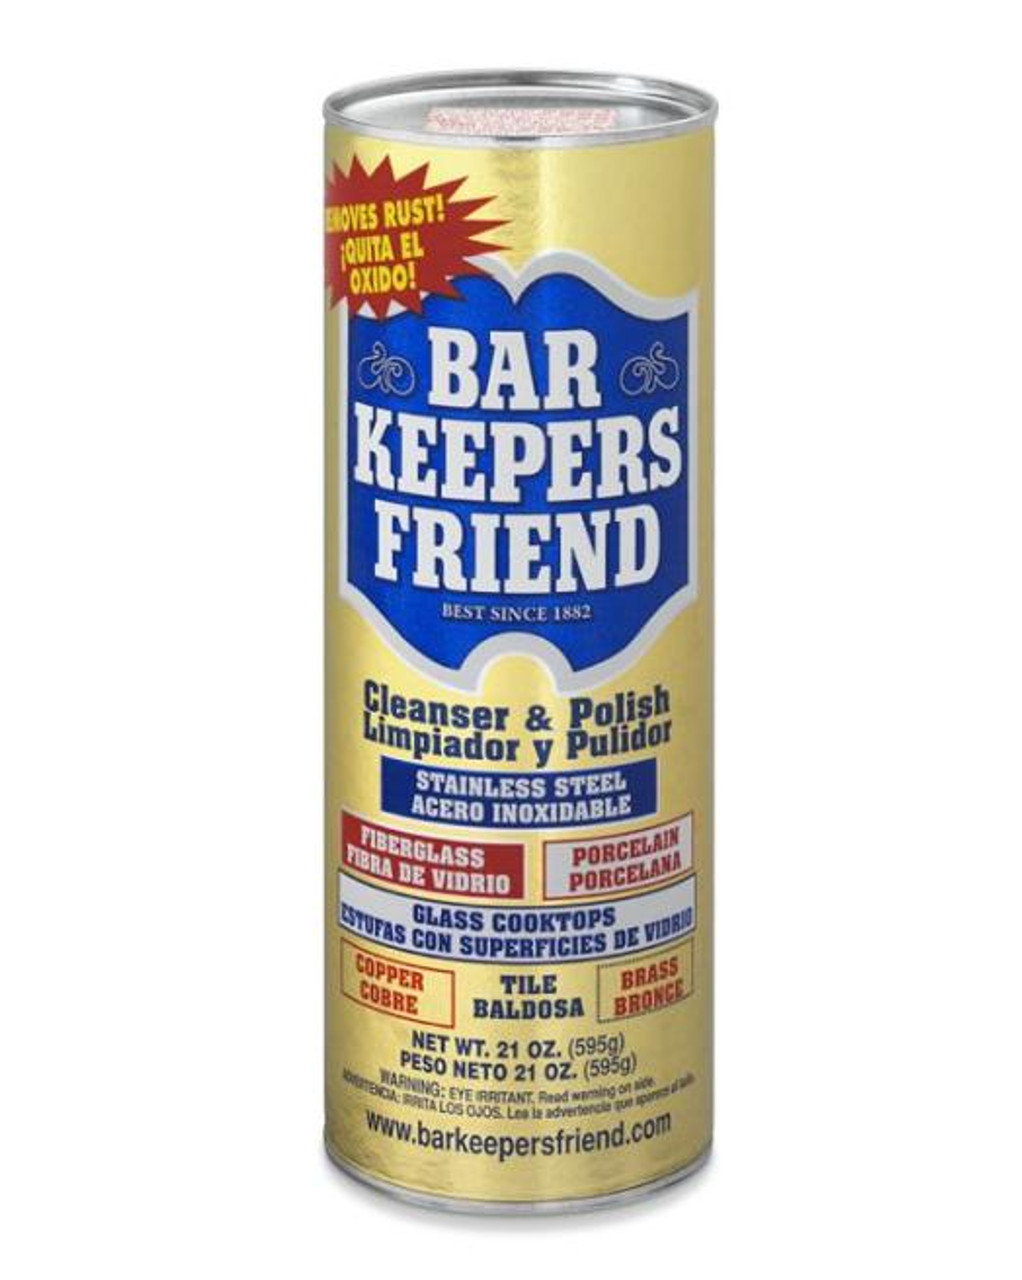 BARKEEPERS FRIEND CLEANSER - 12 oz